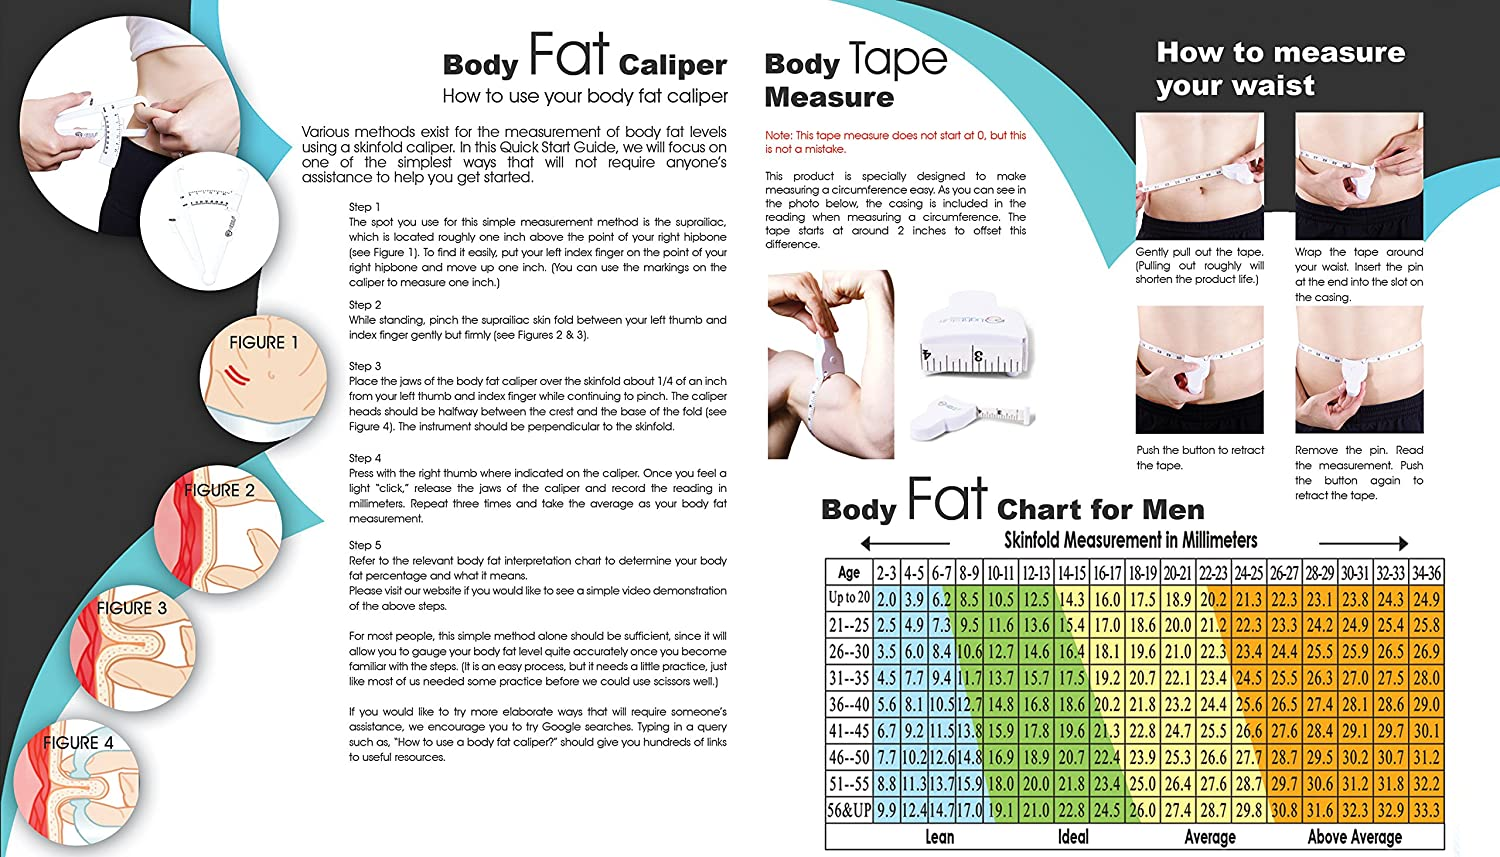 Body Fat Caliper, Body Tape Measure, BMI Calculator - Instructions for Skinfold Caliper and Body Fat Charts for Men and Women Included: Lightstuff Body Health Tool Kit: Health & Personal Care